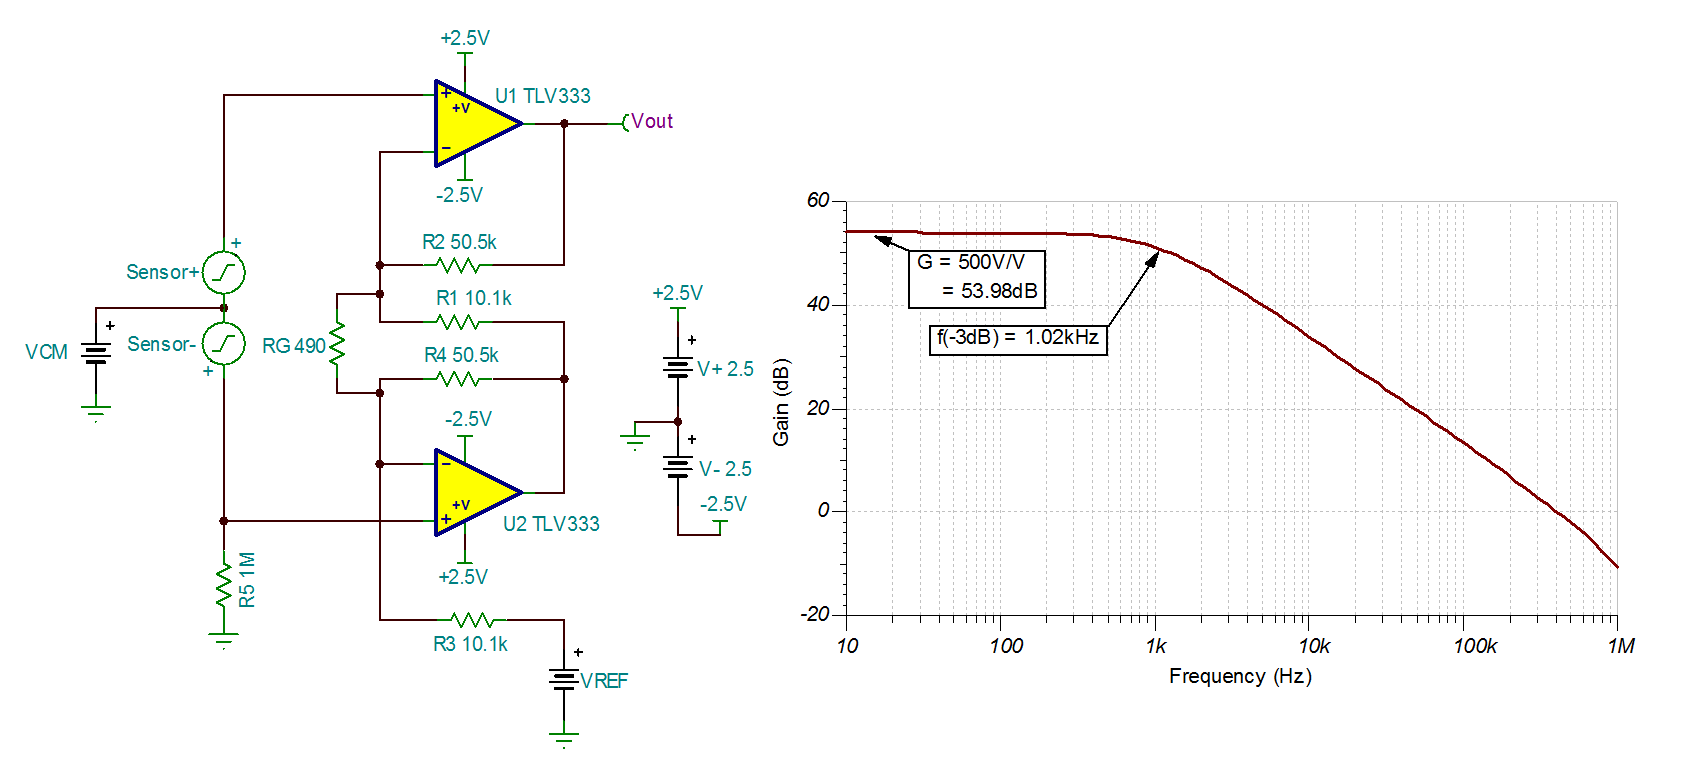 How to design cost-sensitive DC instrumentation circuits